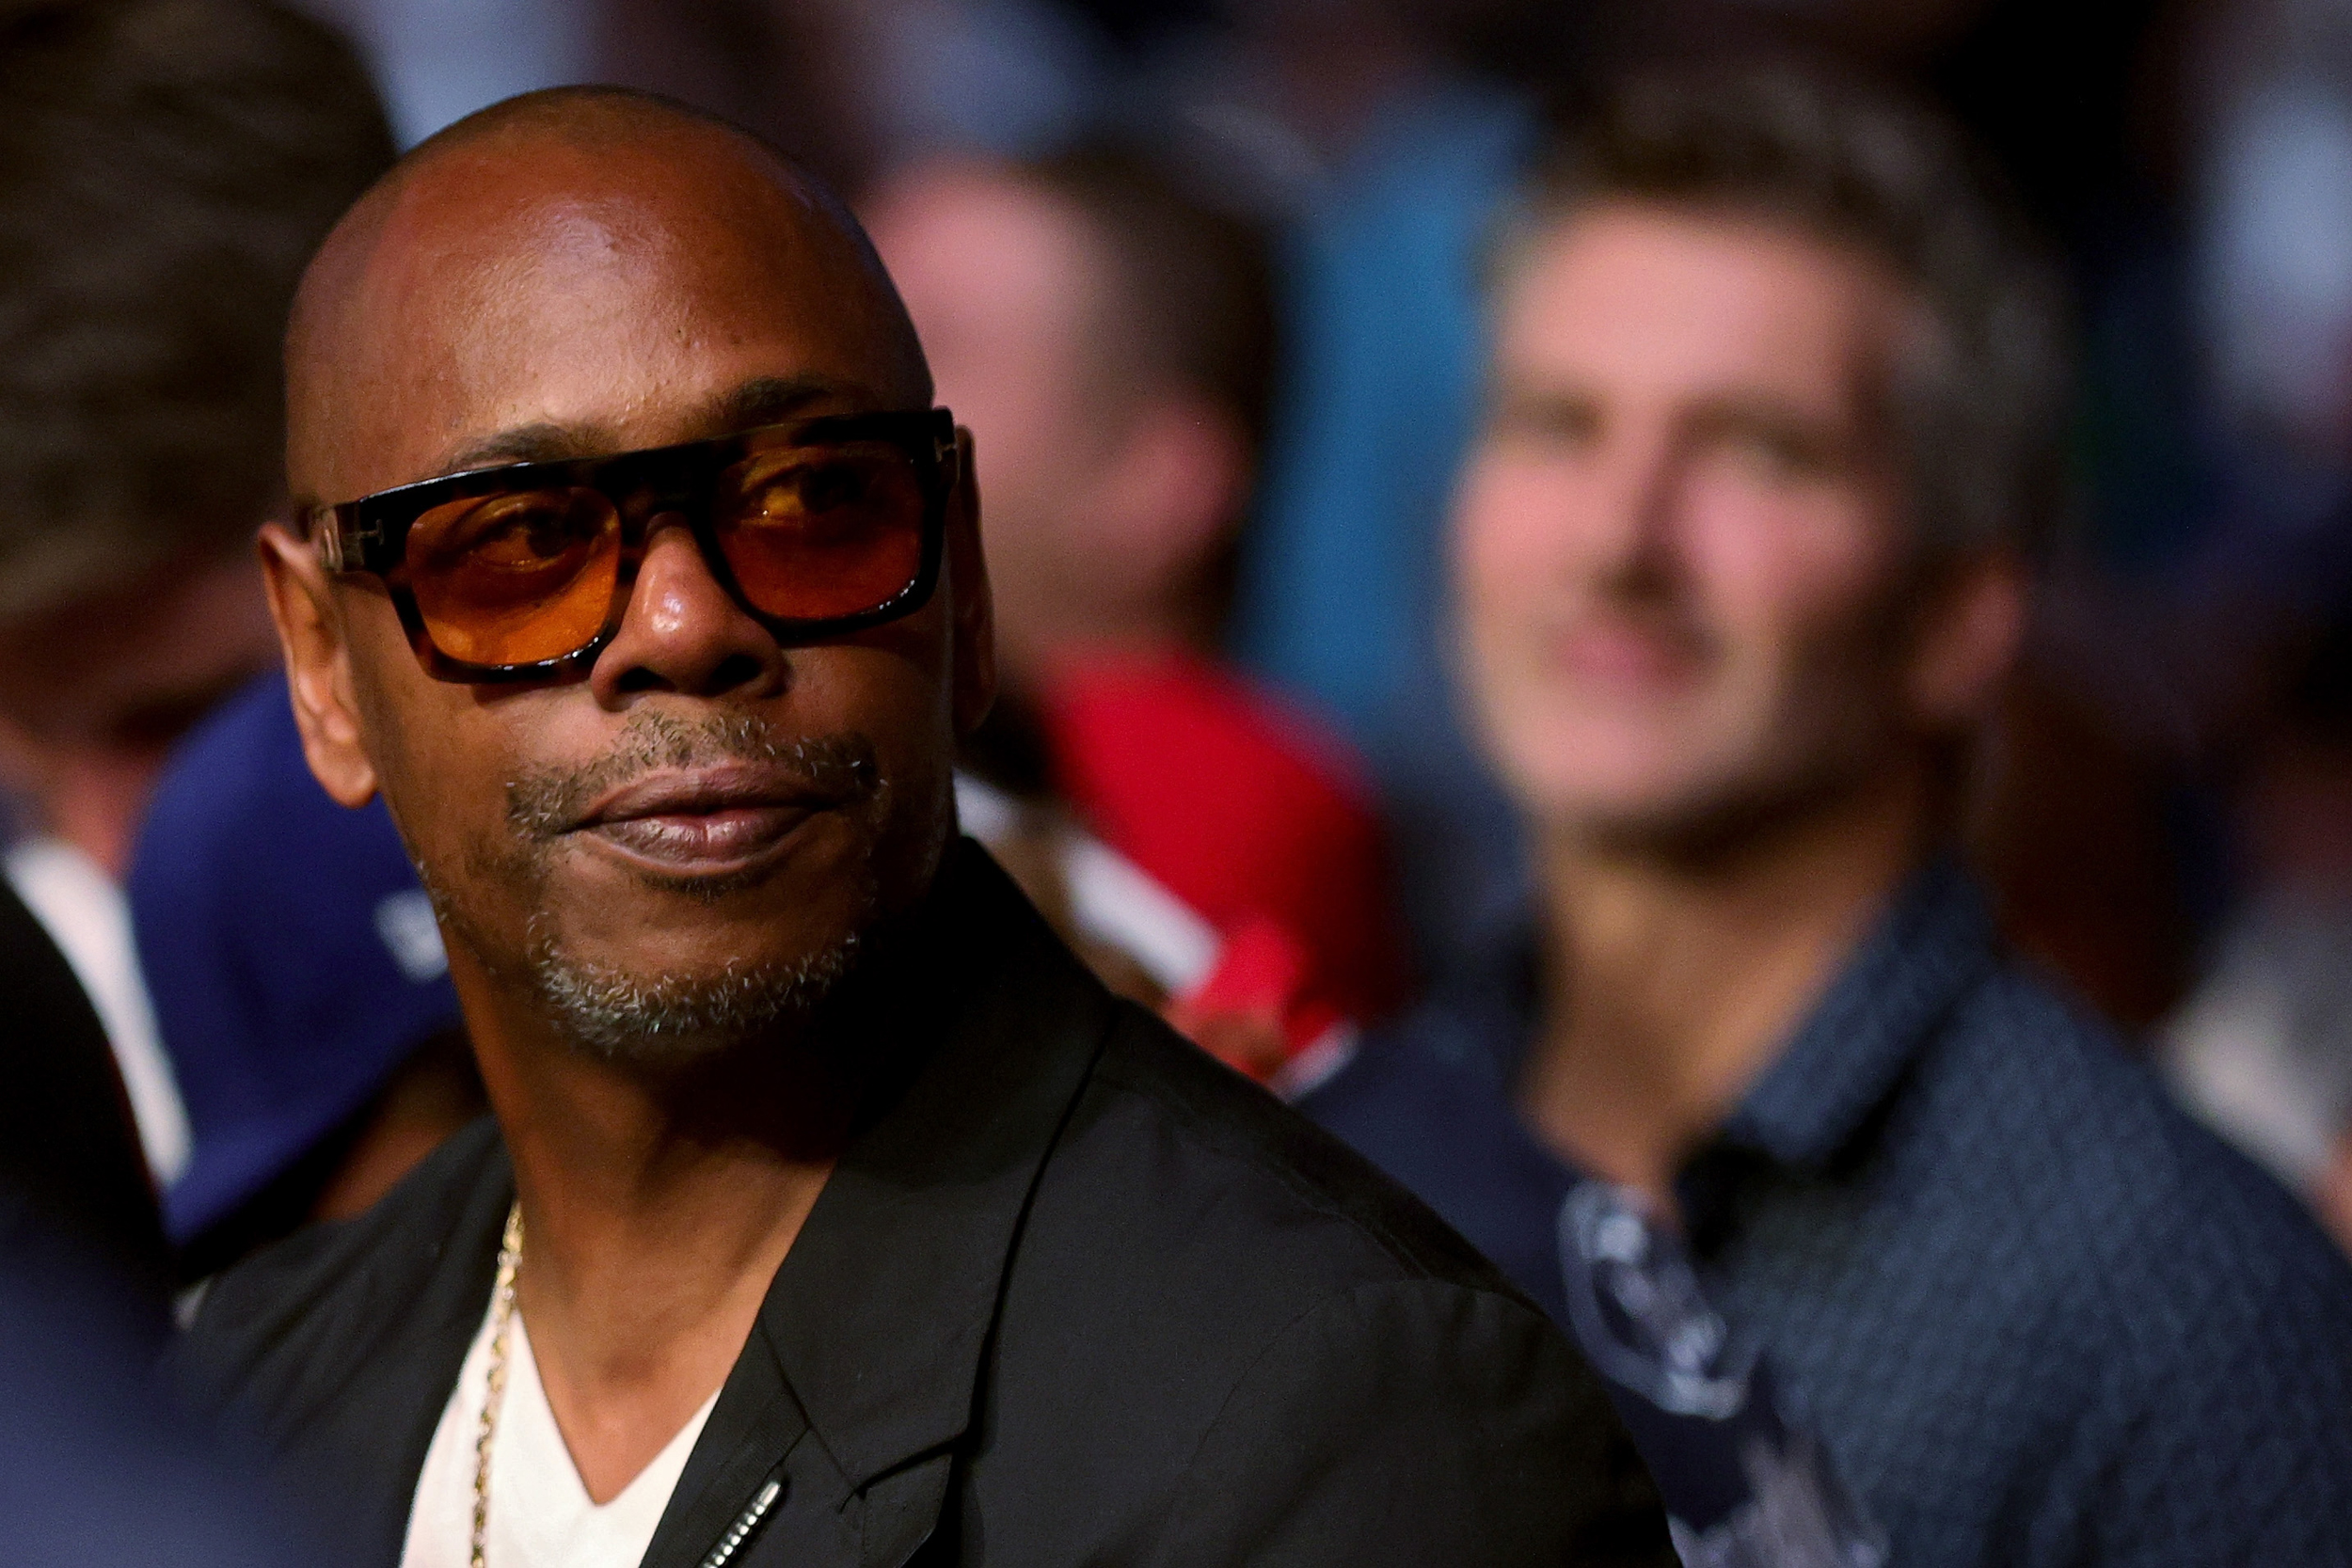 Netflix-trans-employees-and-allies-plan-walkout-in-protest-of-Dave-Chappelle-special